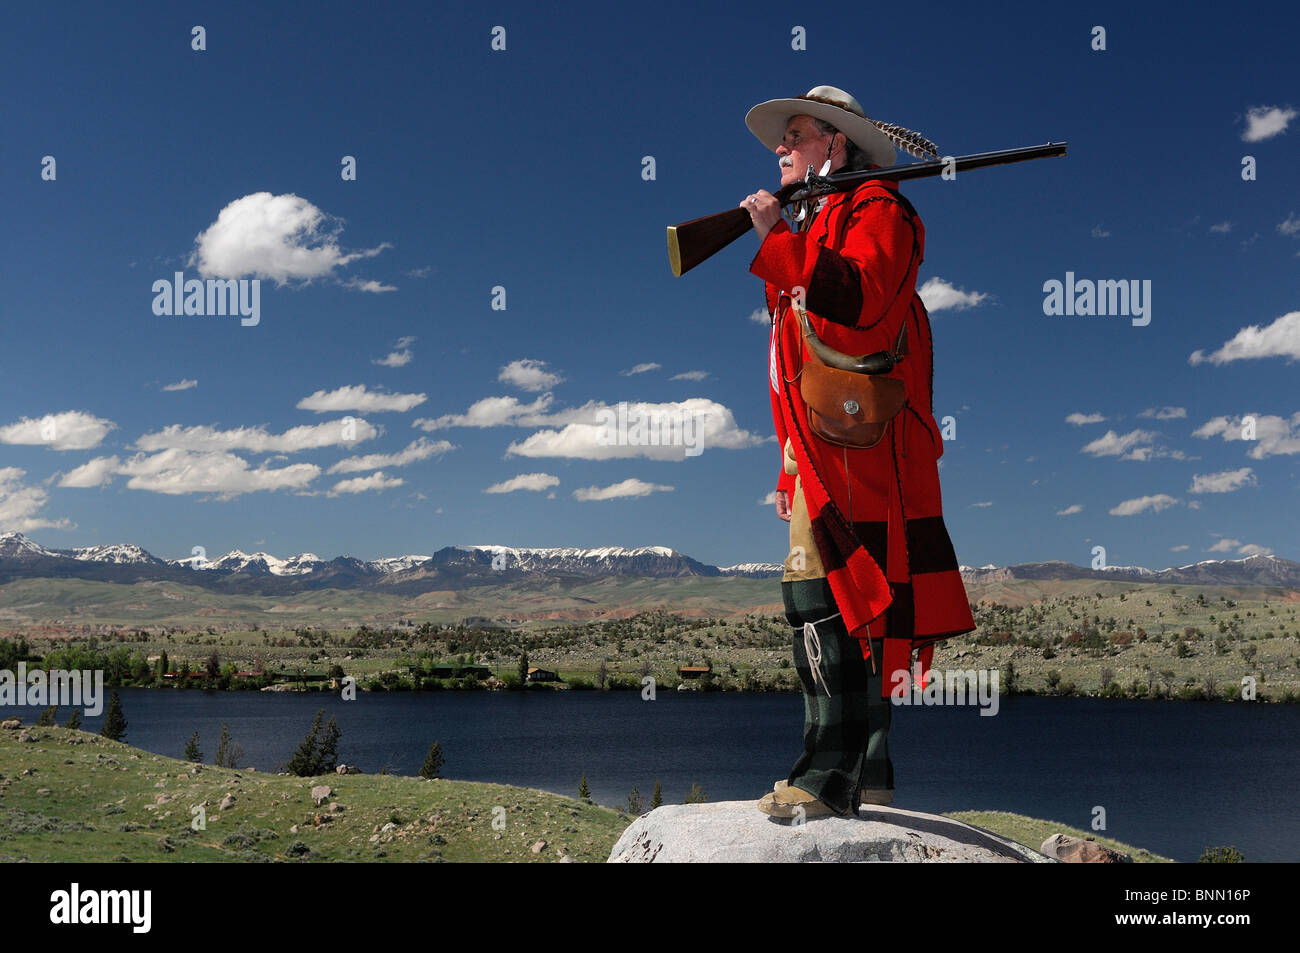 Re-enactor Steve Banks in mountain man costume with rifle Dubois Wyoming USA wild west - Stock Image